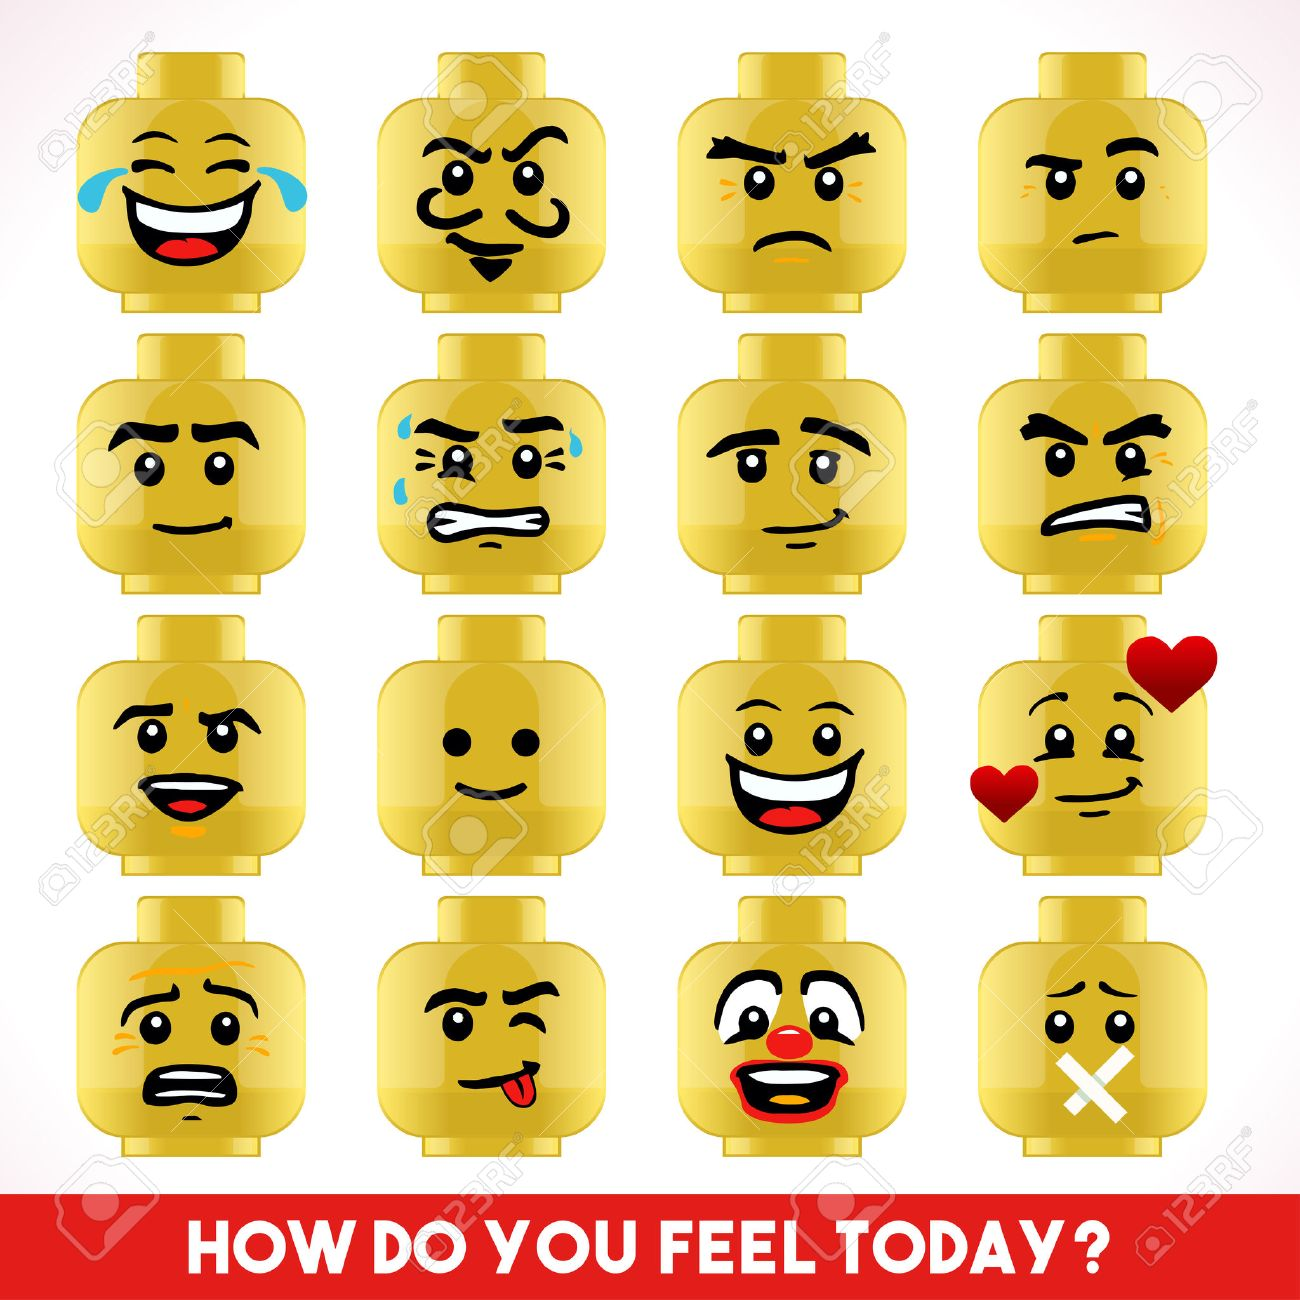 Toy Block Collection of Different Emoji Faces - 47073250